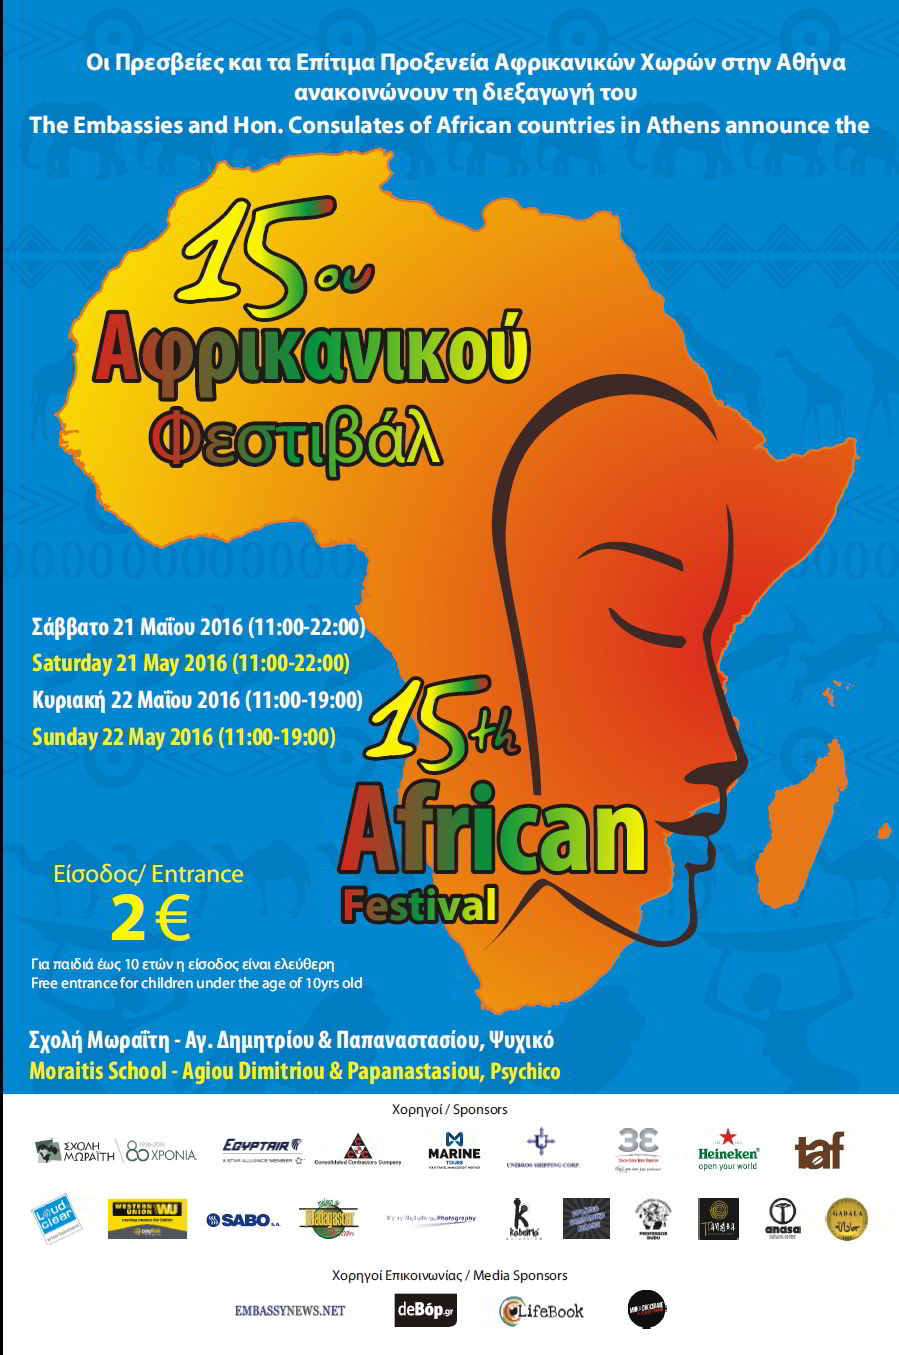 15th African Festival